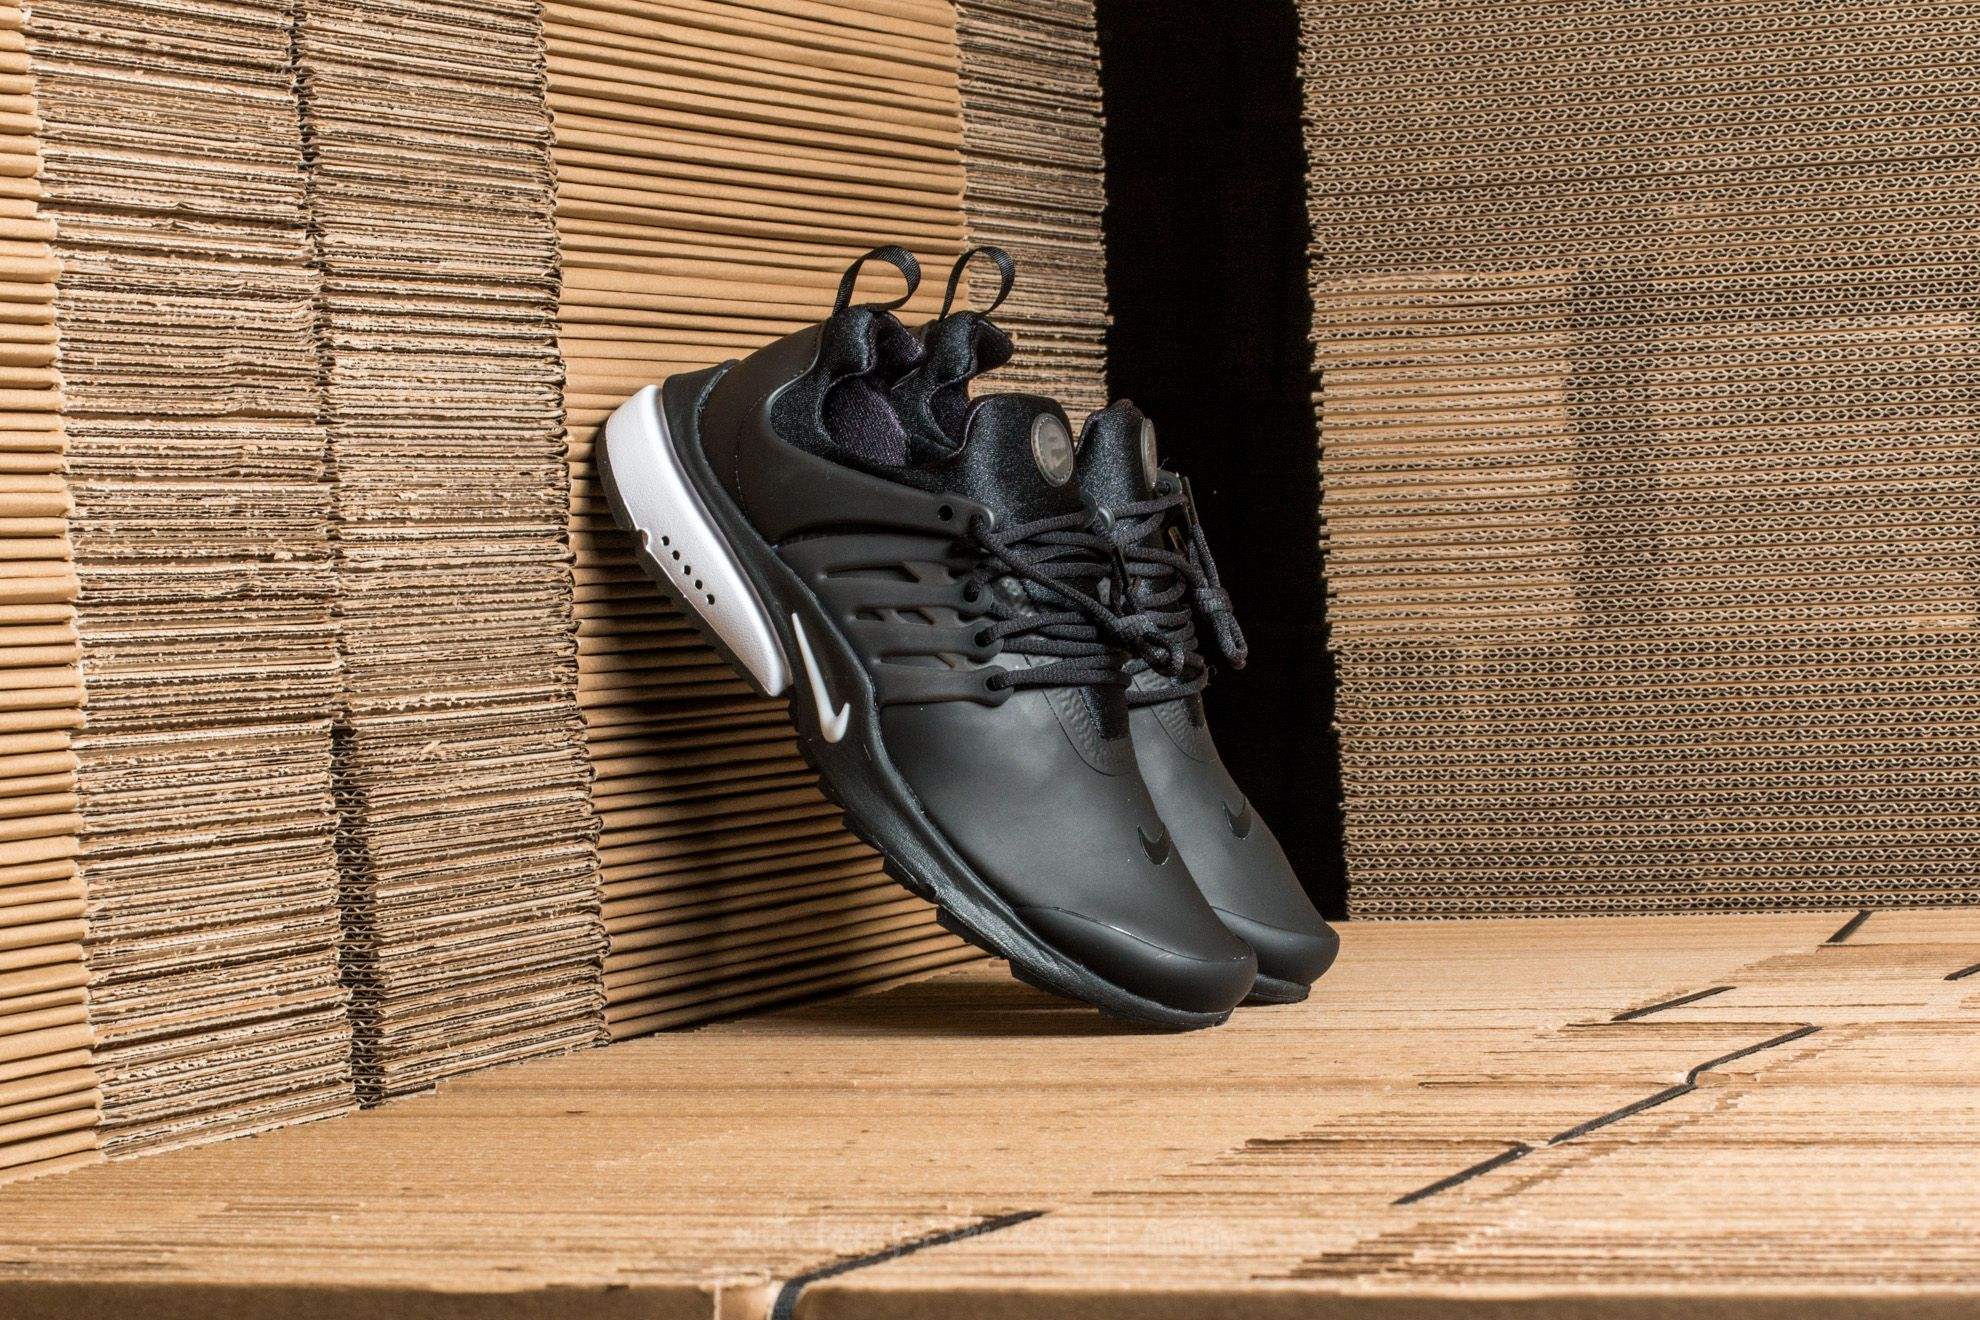 Nike Air Presto Low Utility Black  White  db4f5e7fd